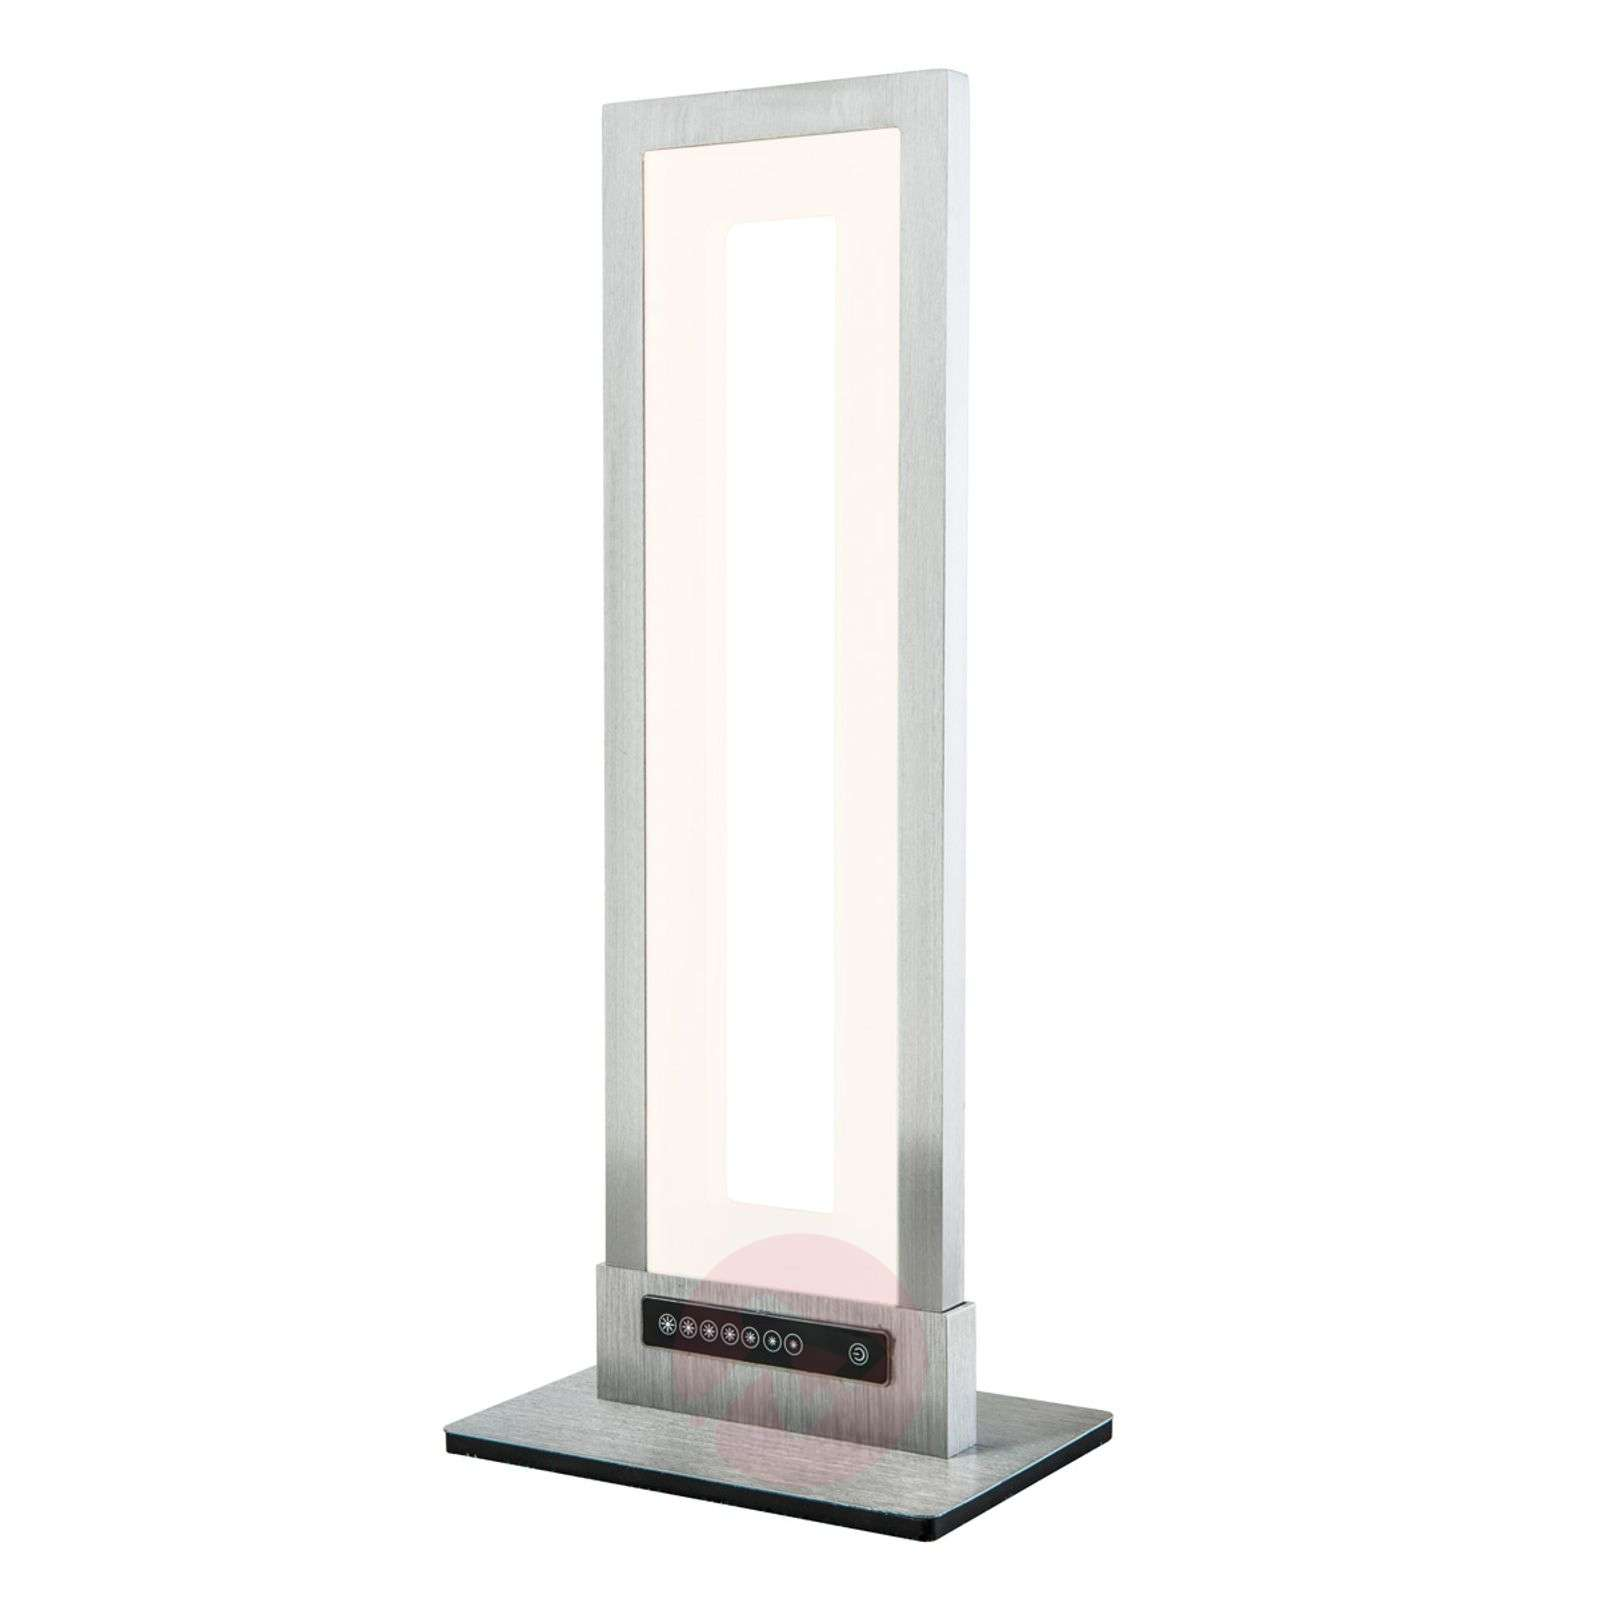 Jano modern led table lamp with dimmer lights jano modern led table lamp with dimmer 7007579 01 aloadofball Choice Image